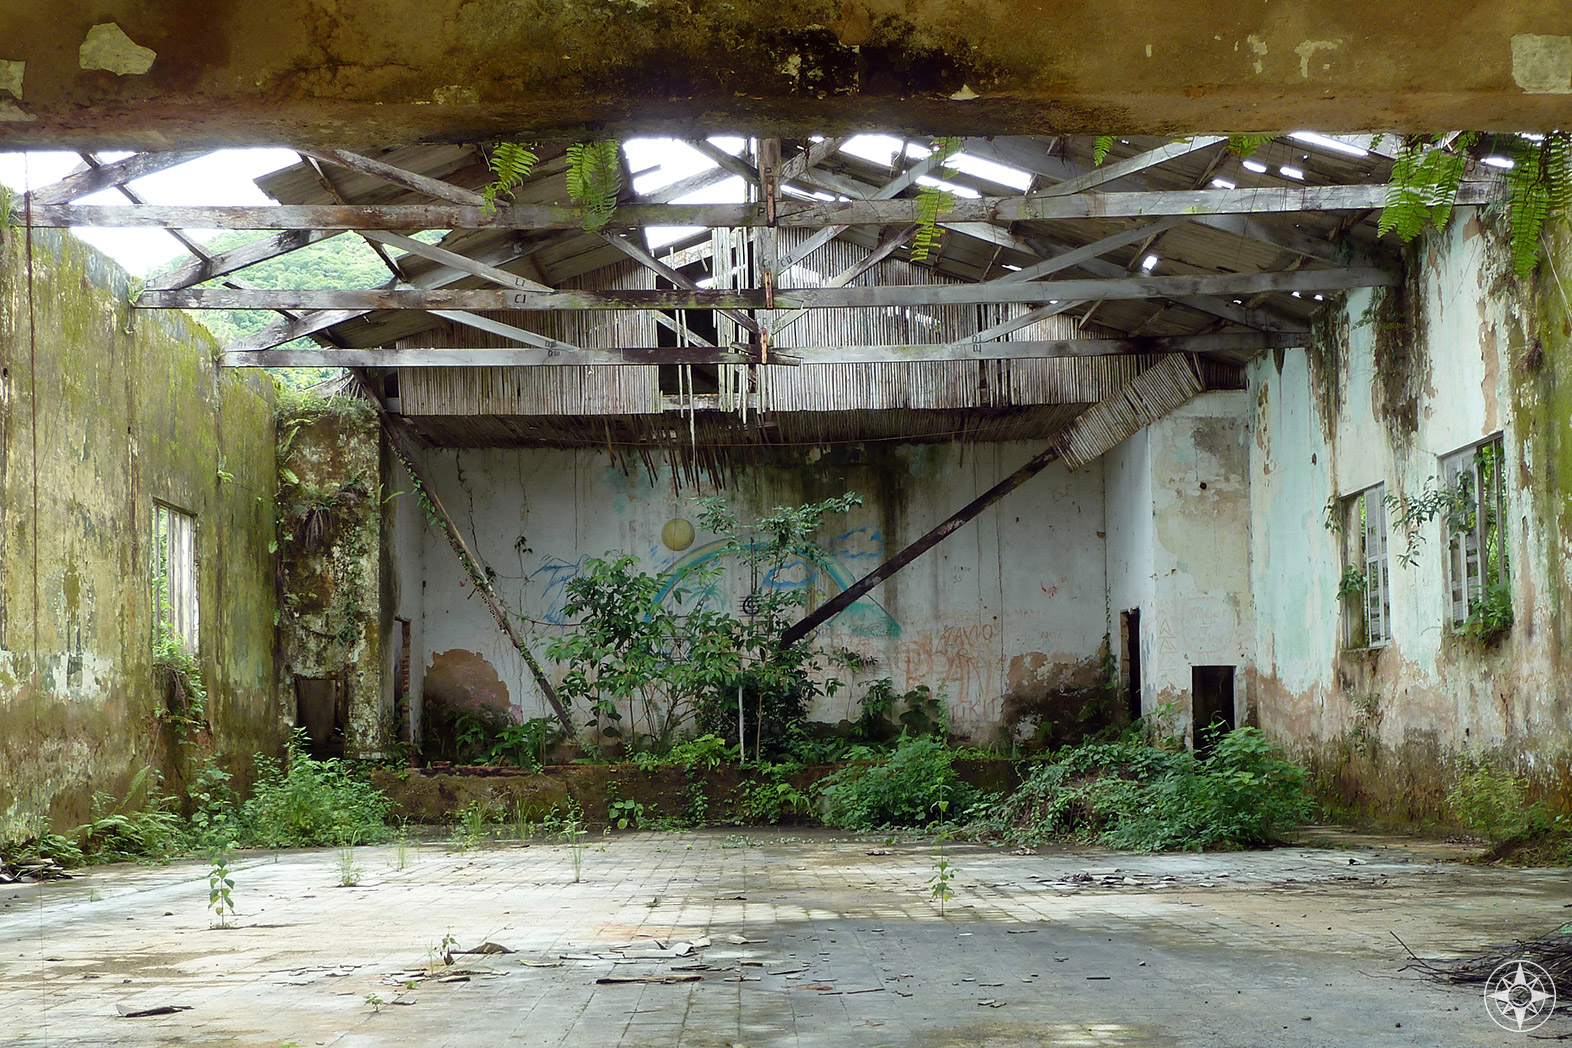 Look inside abandoned building in Dois Rios, Ilha Grande, Brazil.